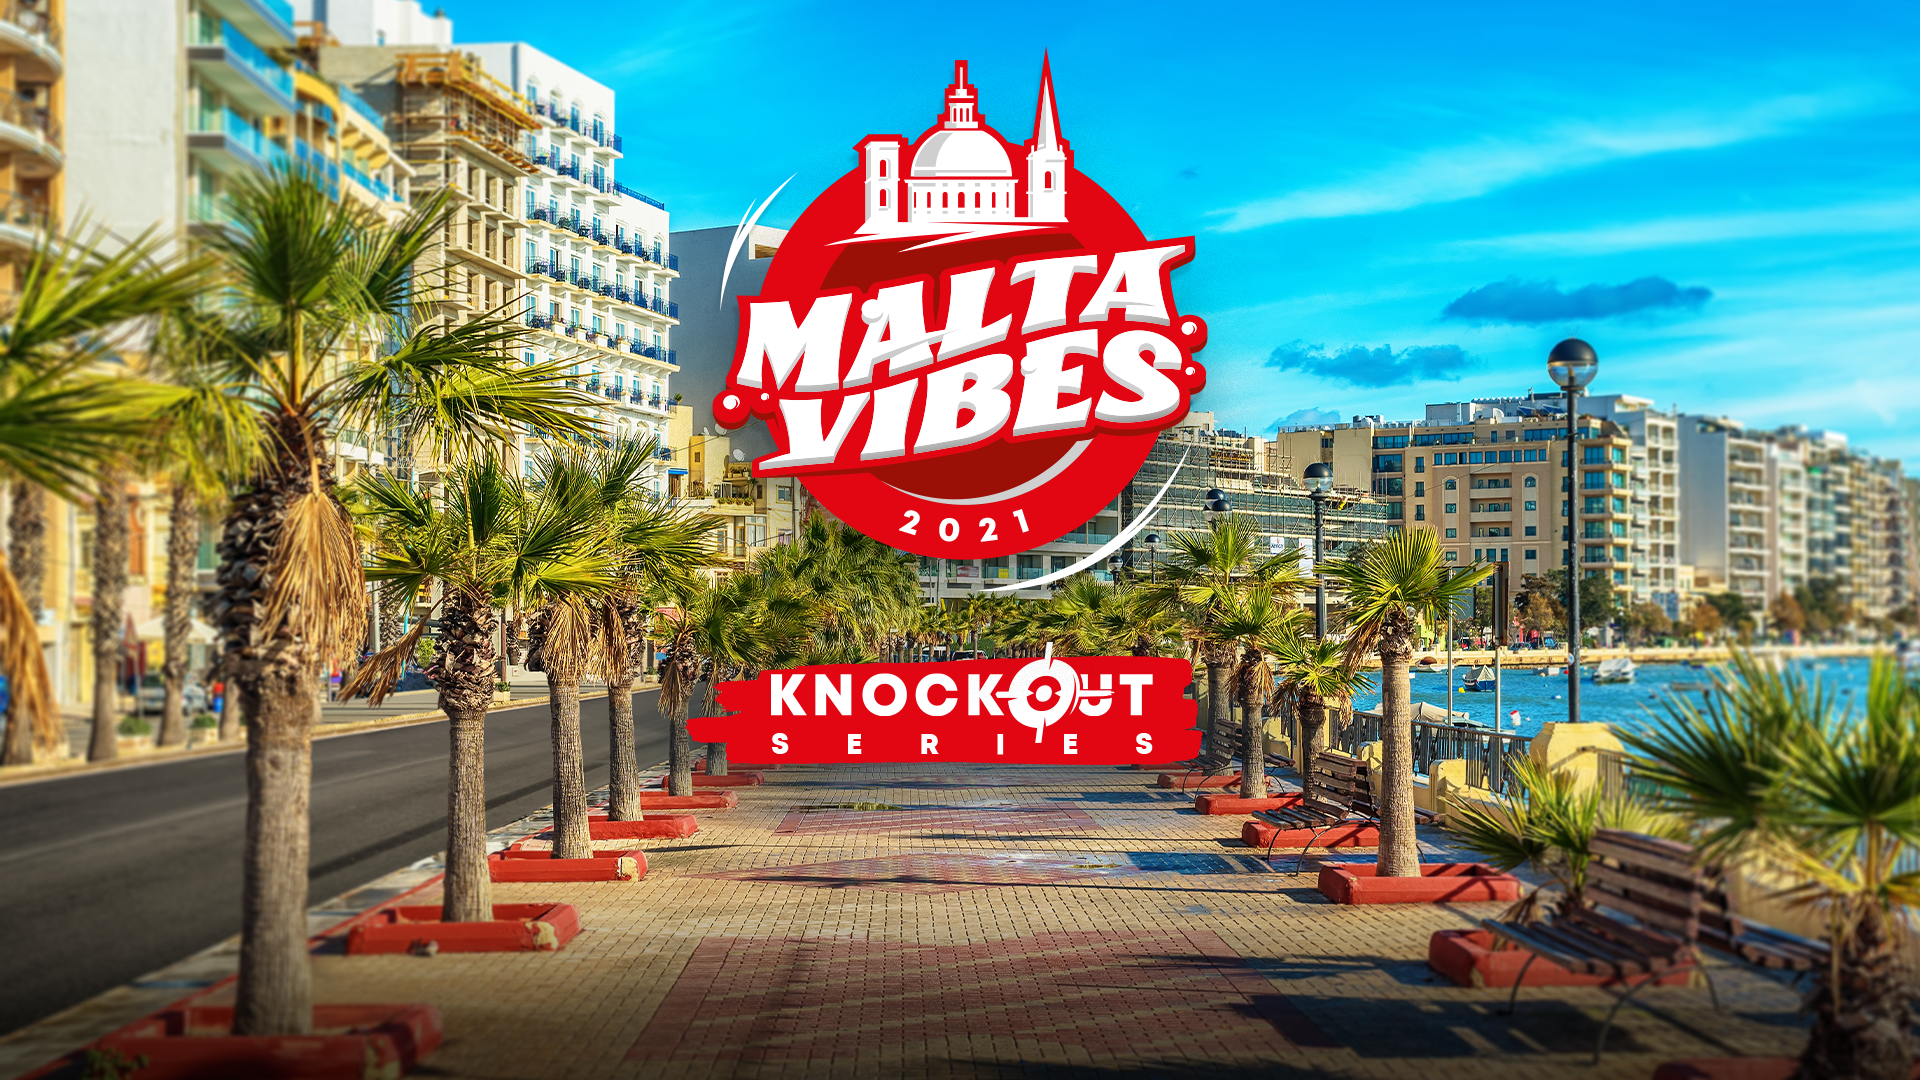 Announcement of the Malta Vibes Knockout Series